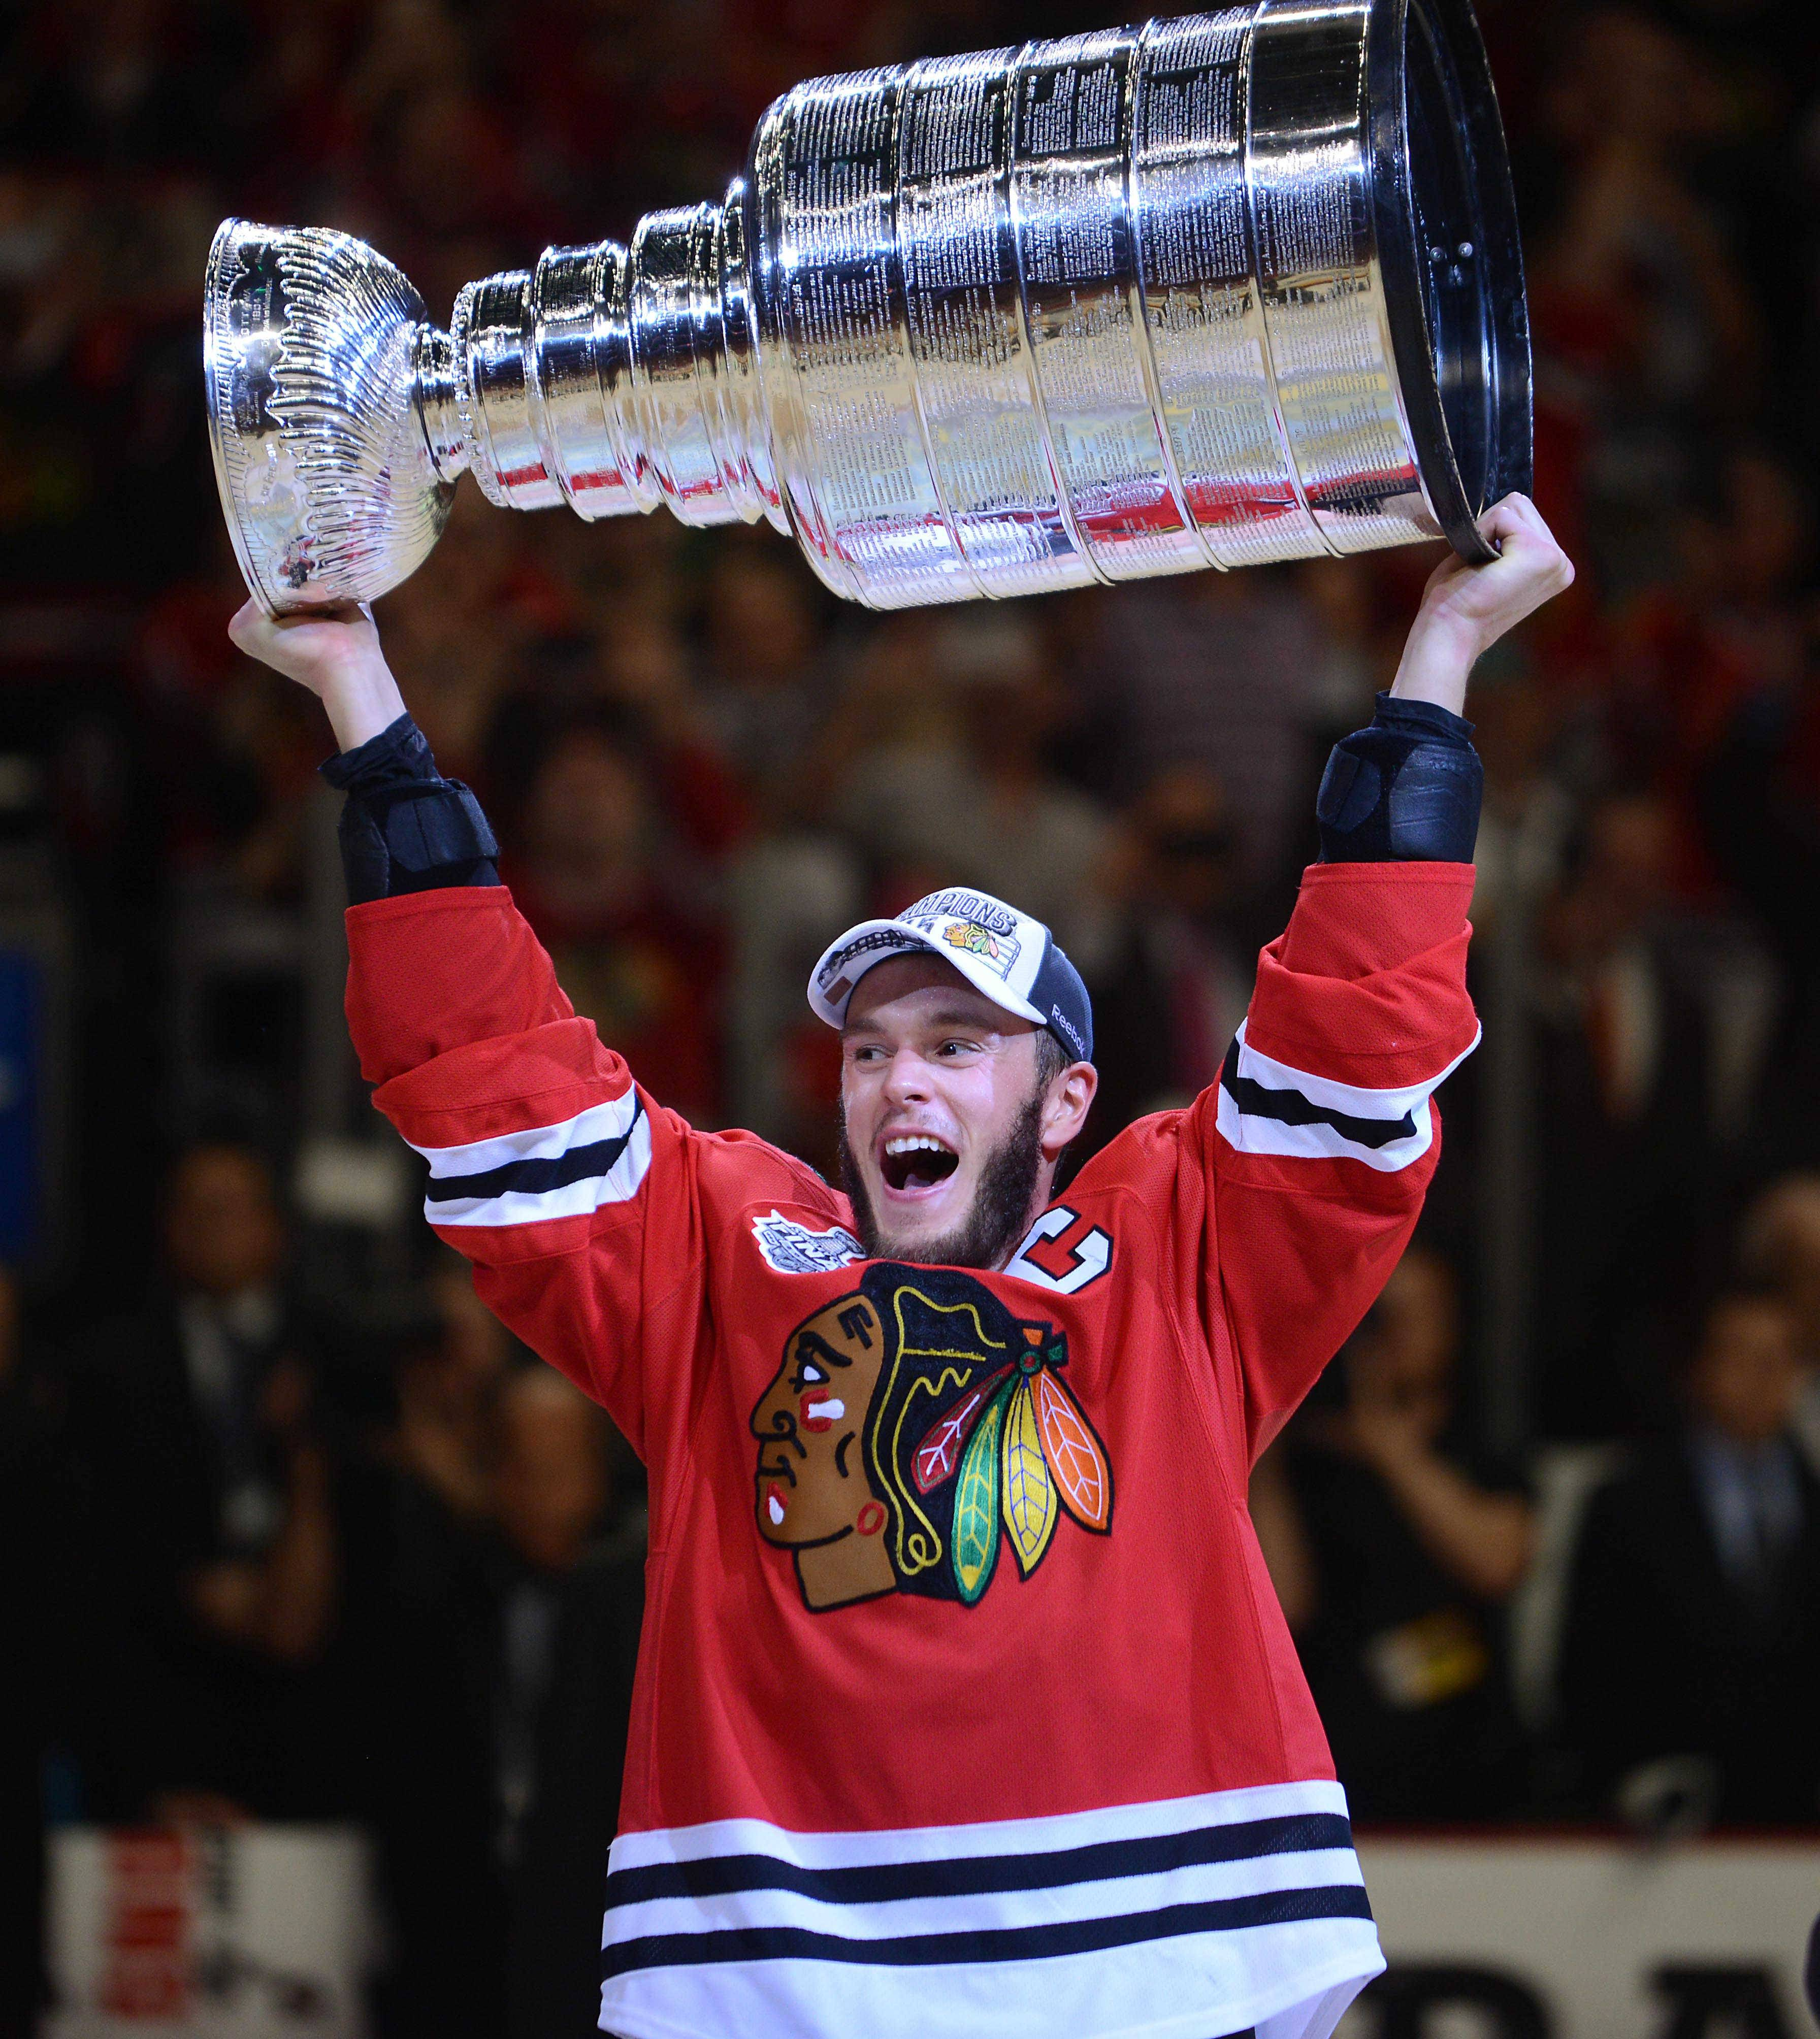 It appears the NHL dynasty for the Chicago Blackhawks and captain Jonathan Toews has come to an abrupt end.